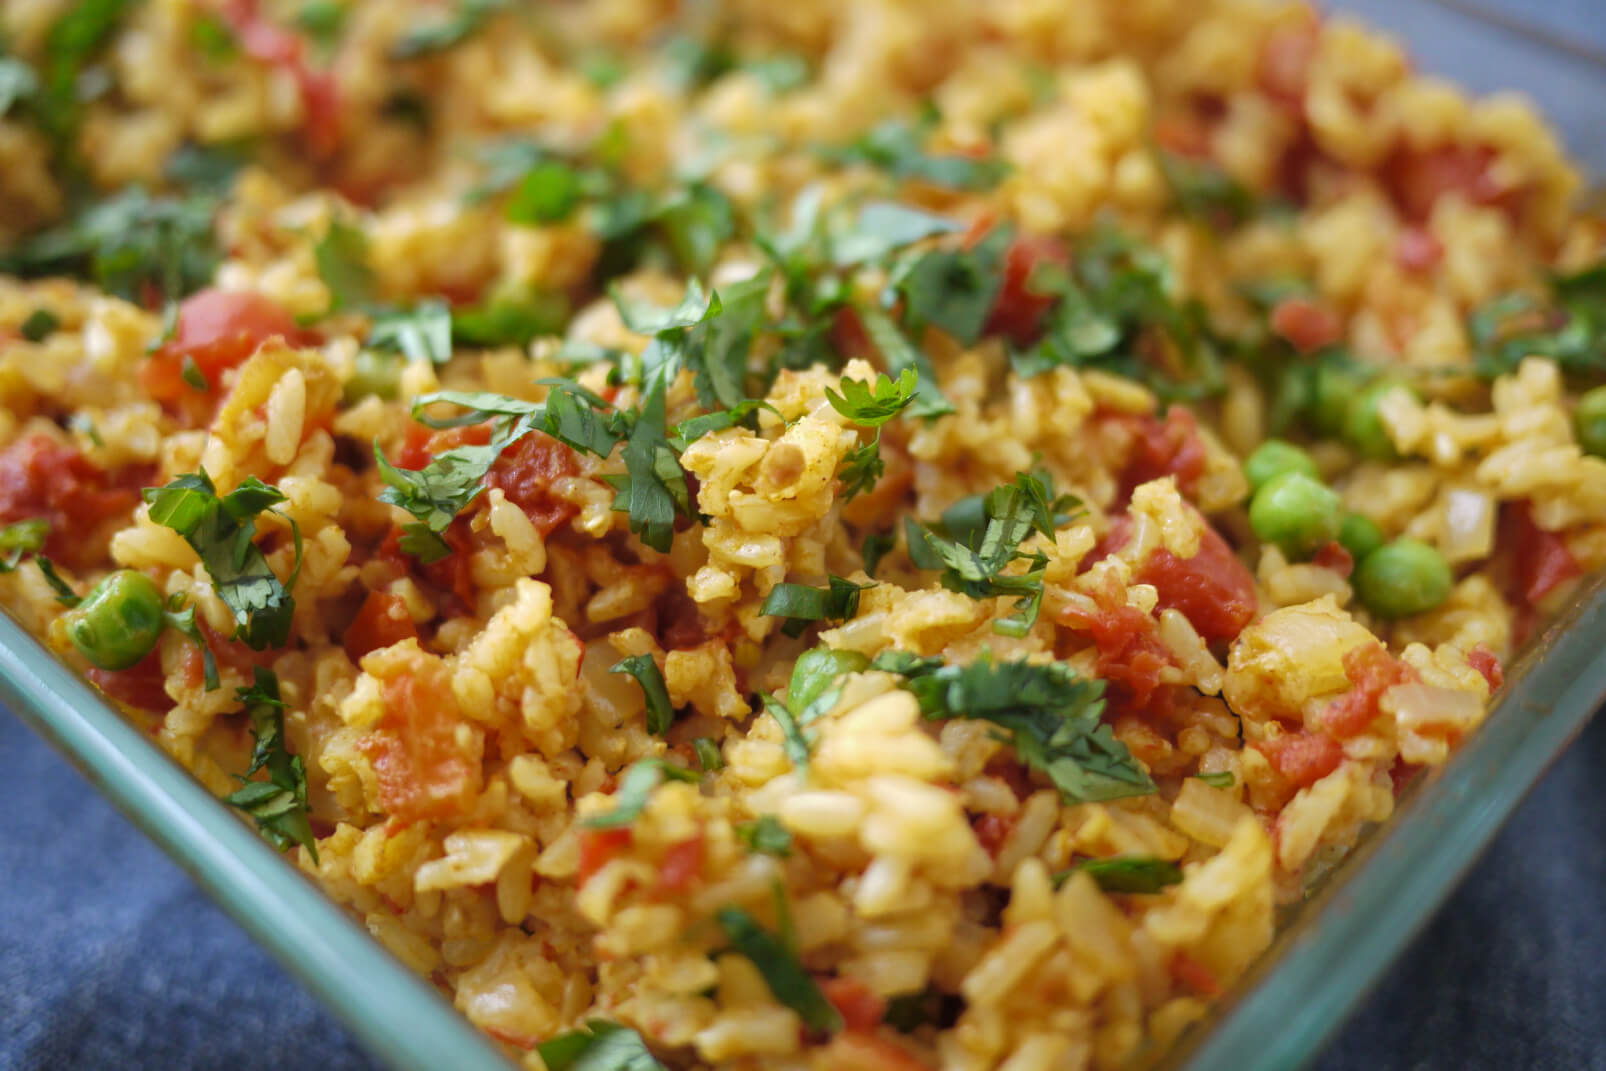 Curried Baked Brown Rice with Tomatoes and Peas